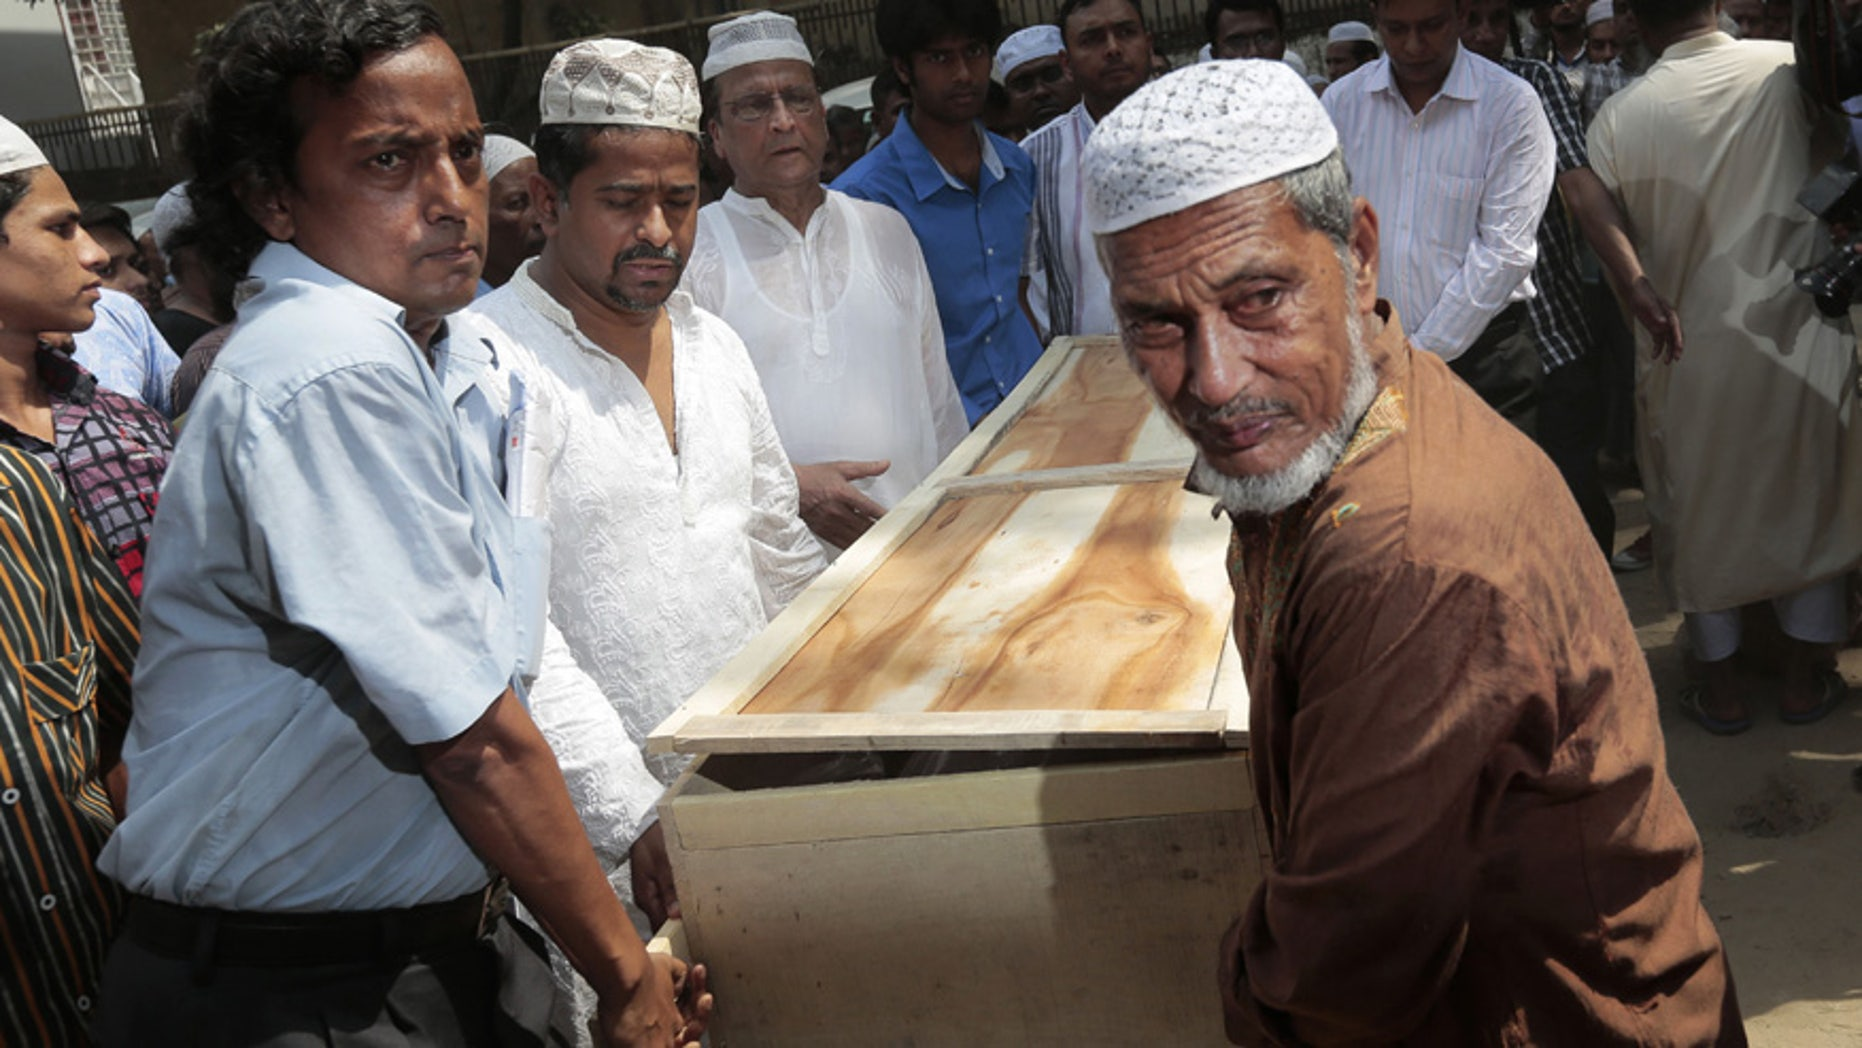 April 26, 2016: Bangladeshi Muslims carry the body of Xulhaz Mannan who was stabbed to death by unidentified assailants for his funeral in Dhaka, Bangladesh.